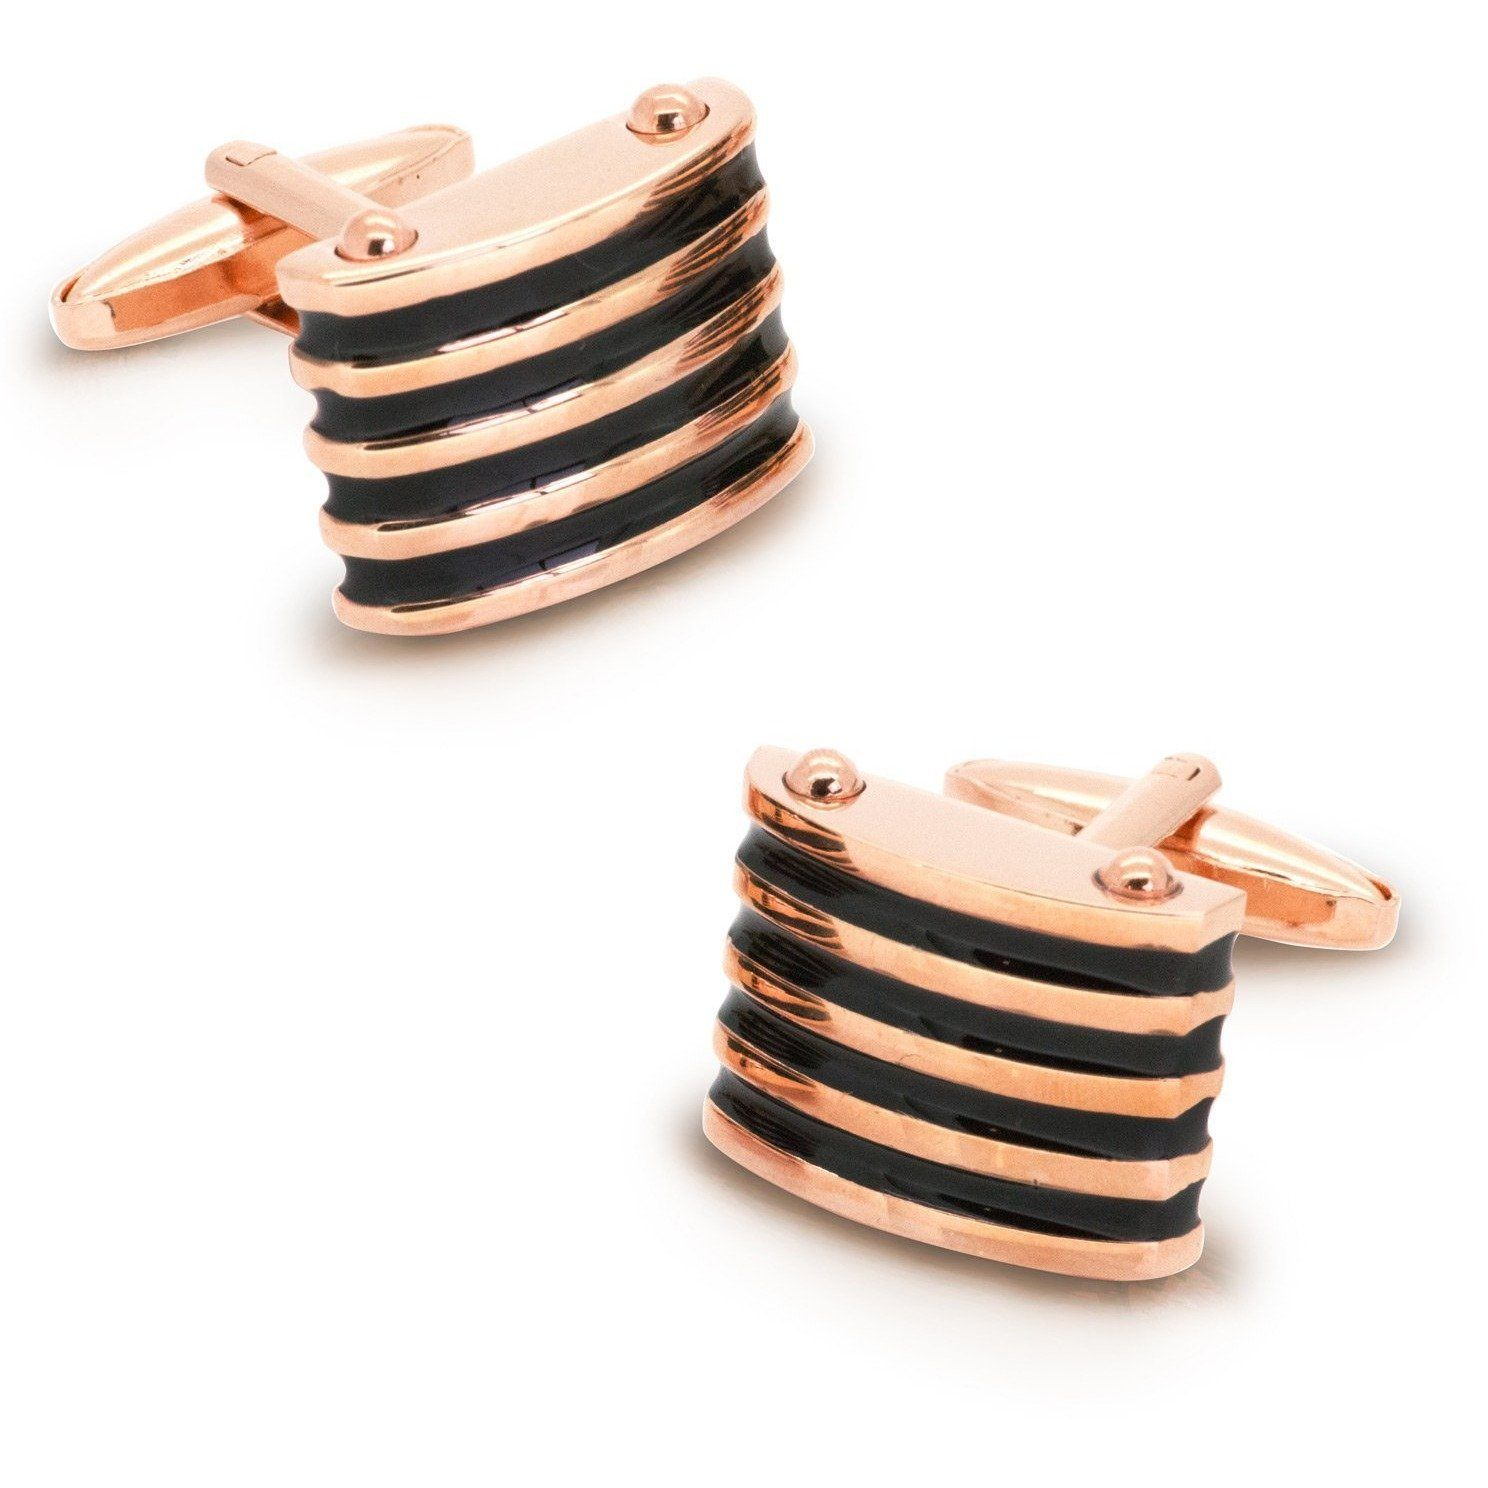 Rose Gold with Black Enamel Grooves Cufflinks, Classc & Modern Cufflinks, Cuffed.com.au, CL2654, $29.00